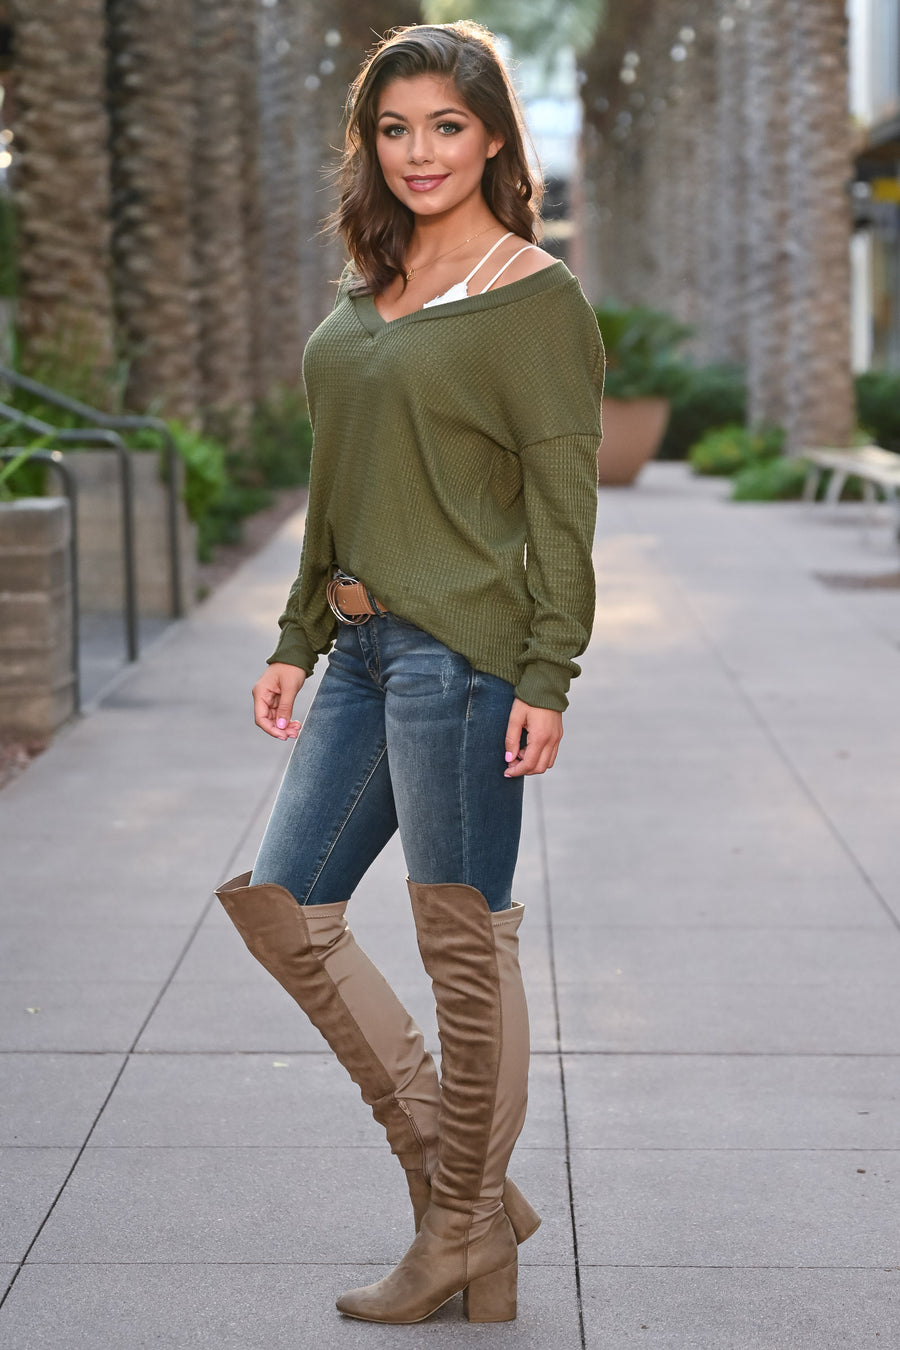 CBRAND It's Your Time Waffle Knit Top - Olive womens casual oversized long sleeve knit fall top closet candy front; Model: Hannah Sluss